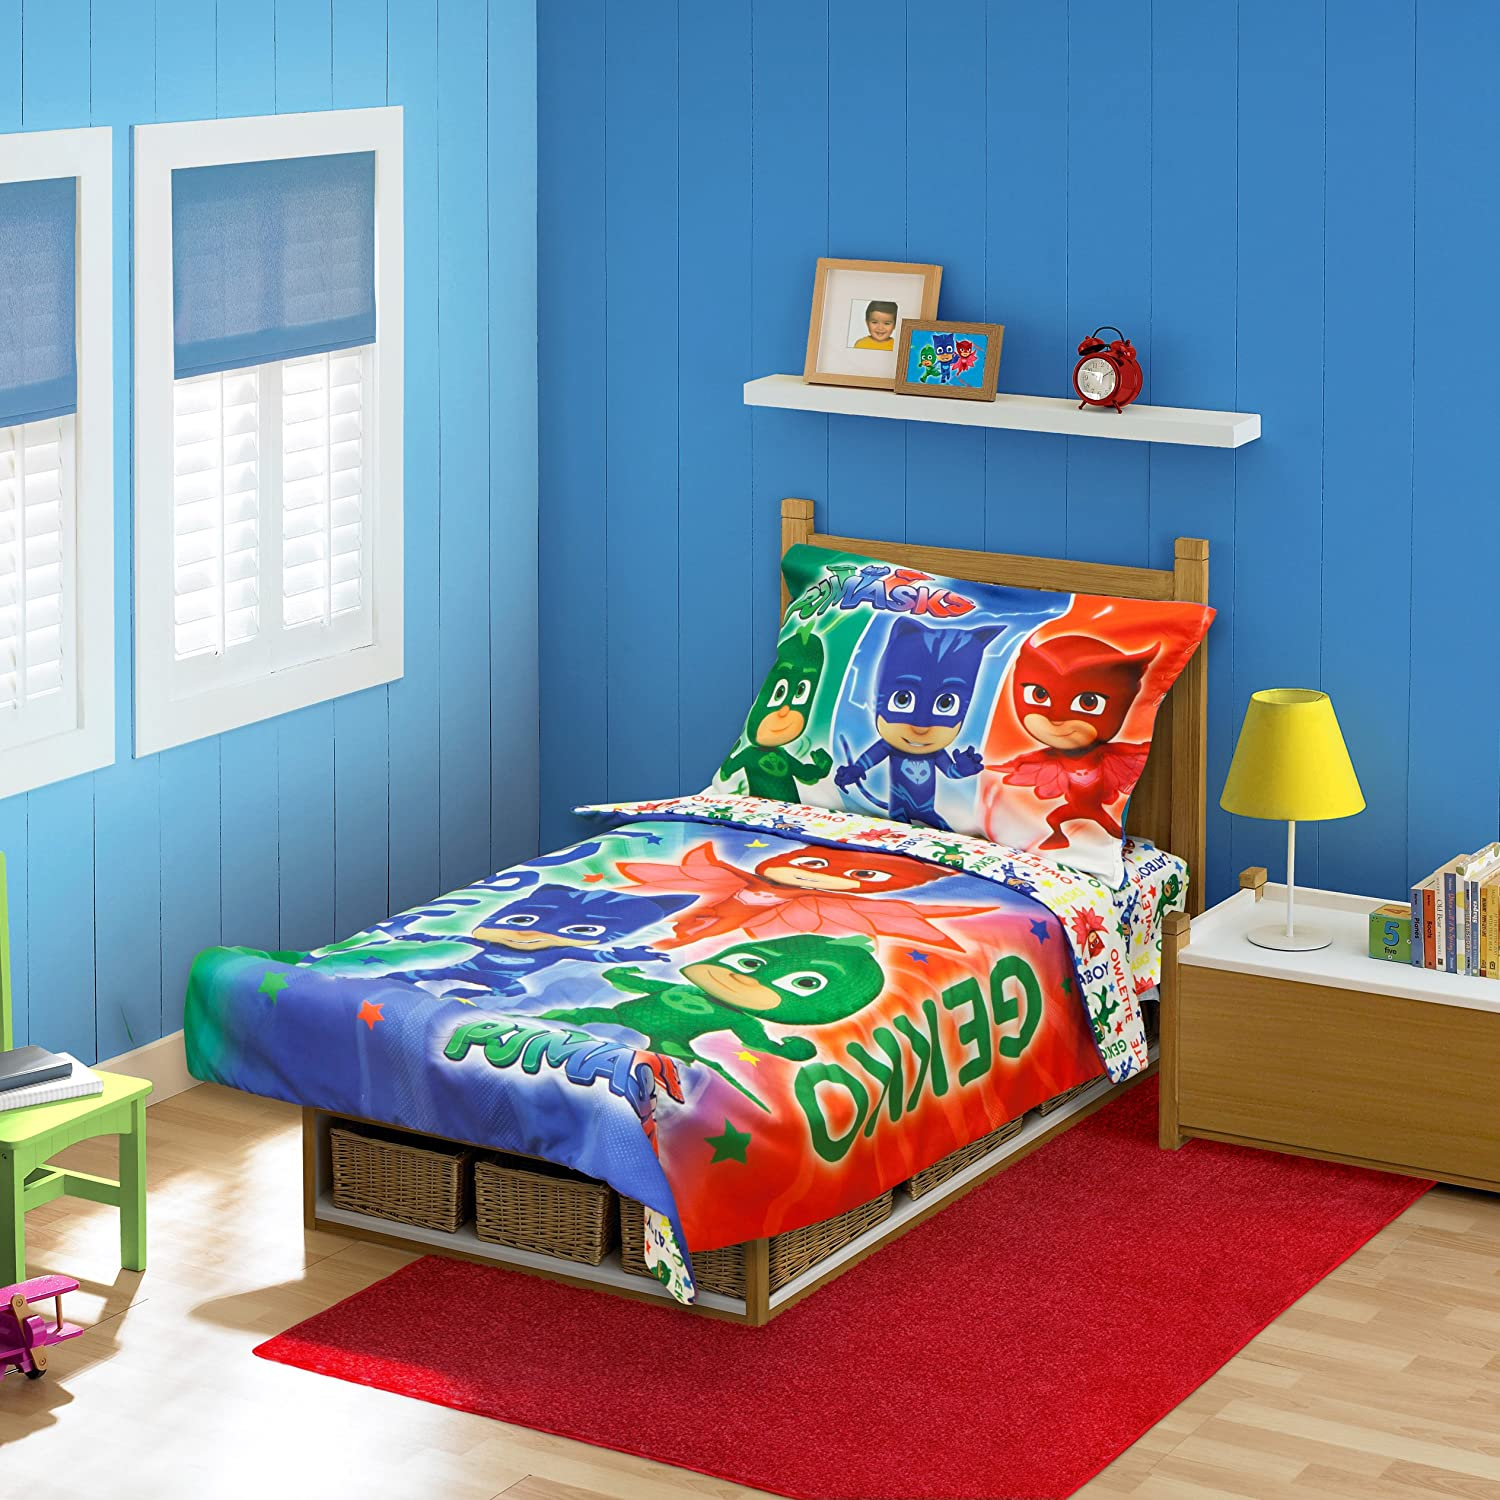 PJ Masks CatBoy Owlete Gekko 4 pc Toddler Bed Set, Blue: Amazon.es: Juguetes y juegos